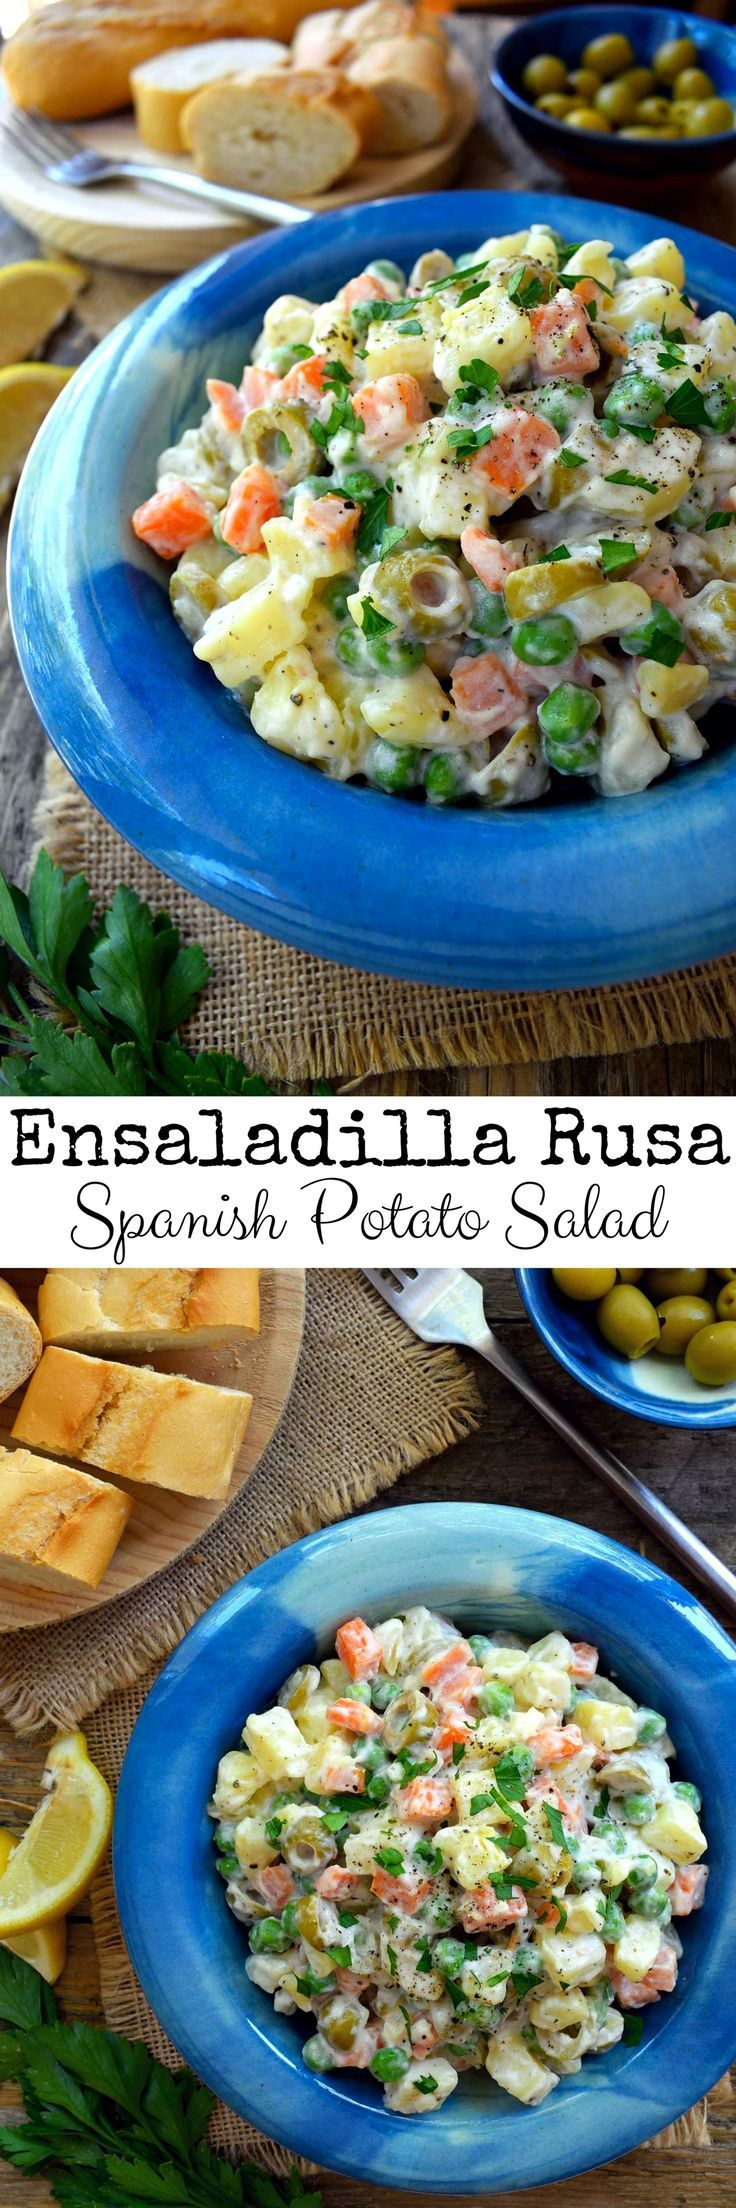 Ensaladilla rusa is a very common tapa dish in Spain. A very easy and filling potato salad, here it´s done vegan with aquafaba mayonnaise.